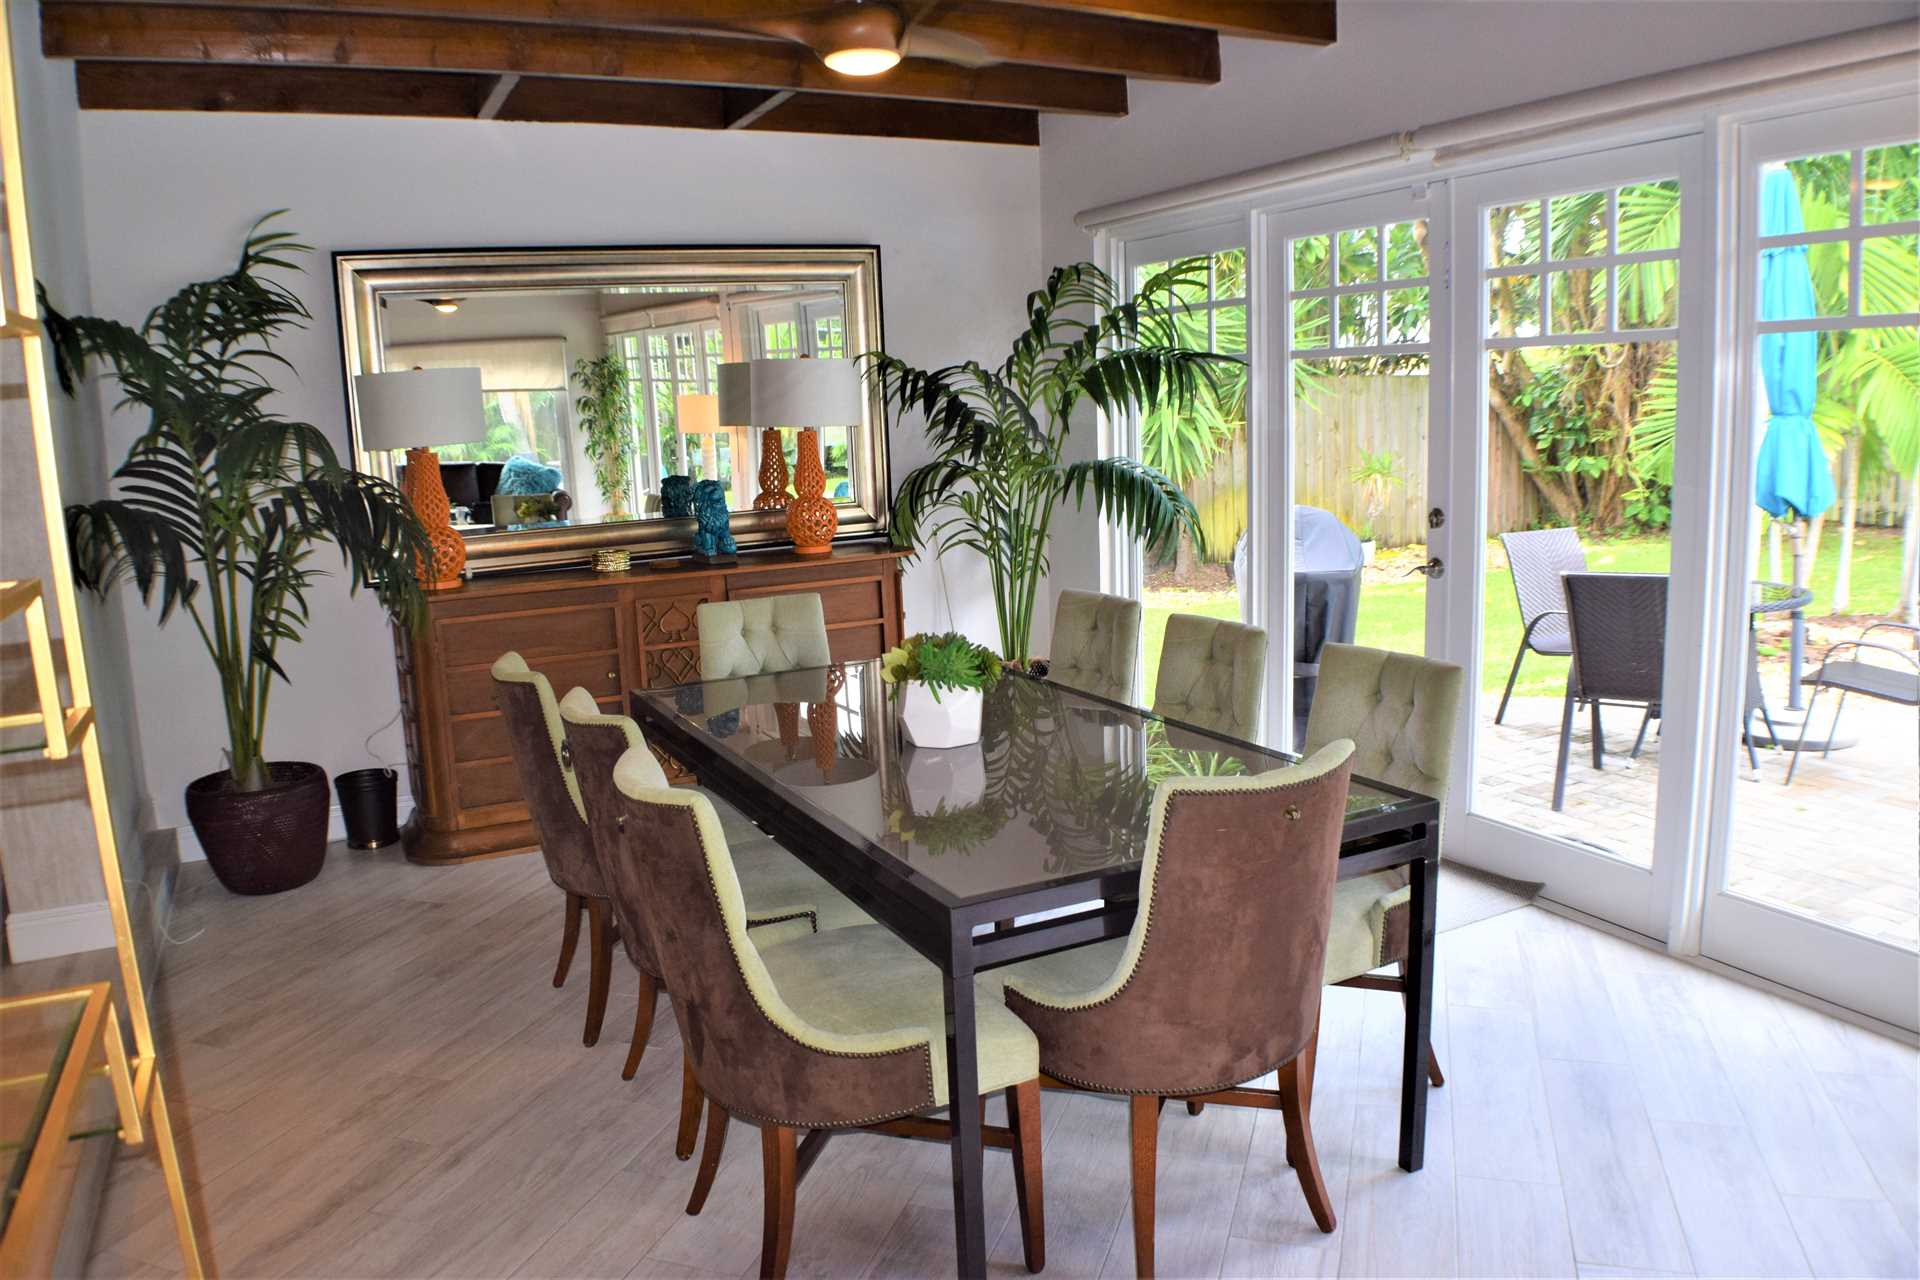 Dining area overlooks and opens to the pool deck.